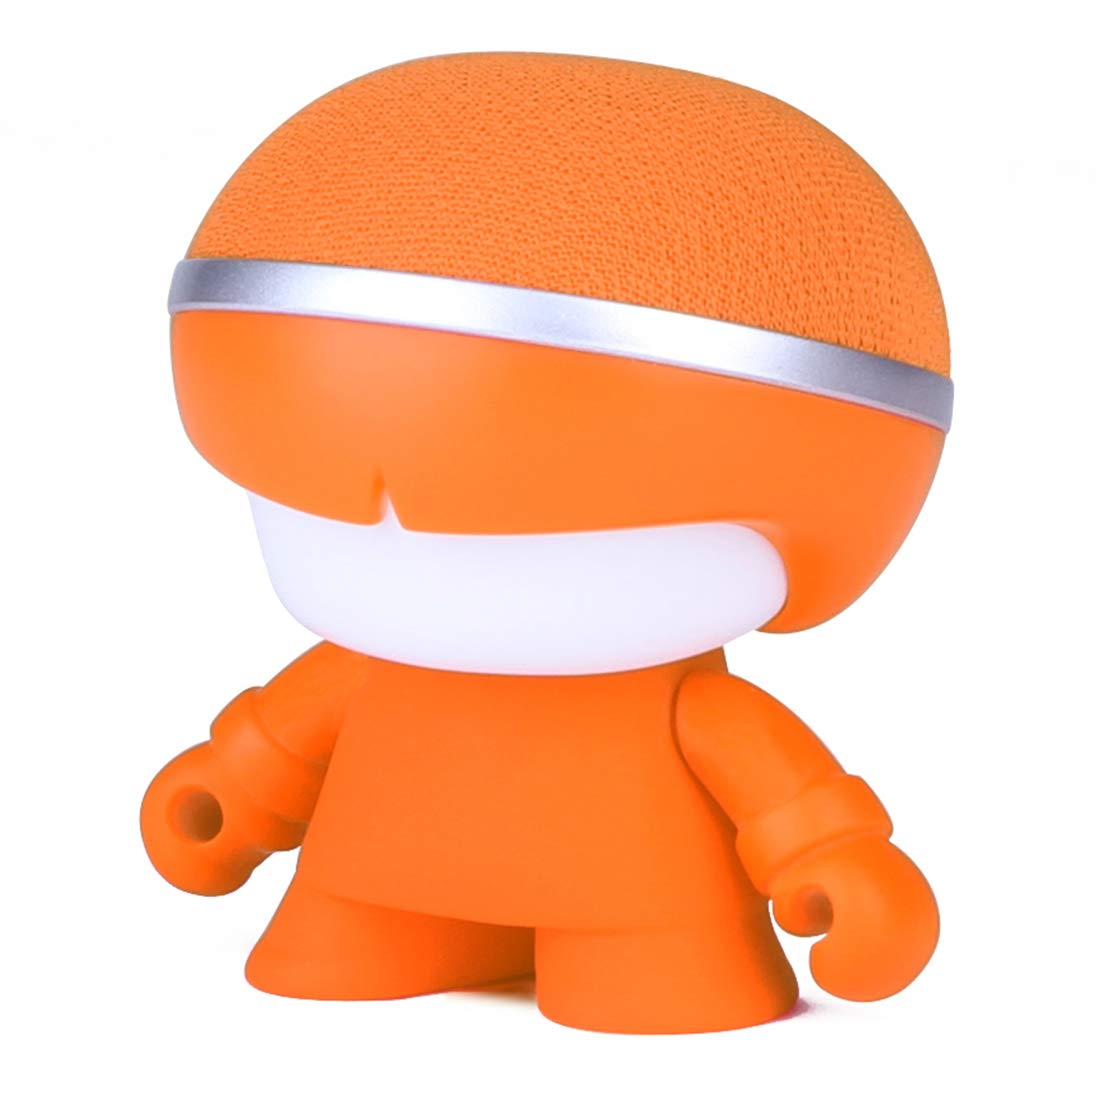 X3 XOOPAR BOY Mini 3 inch Wireless Speaker (Orange)